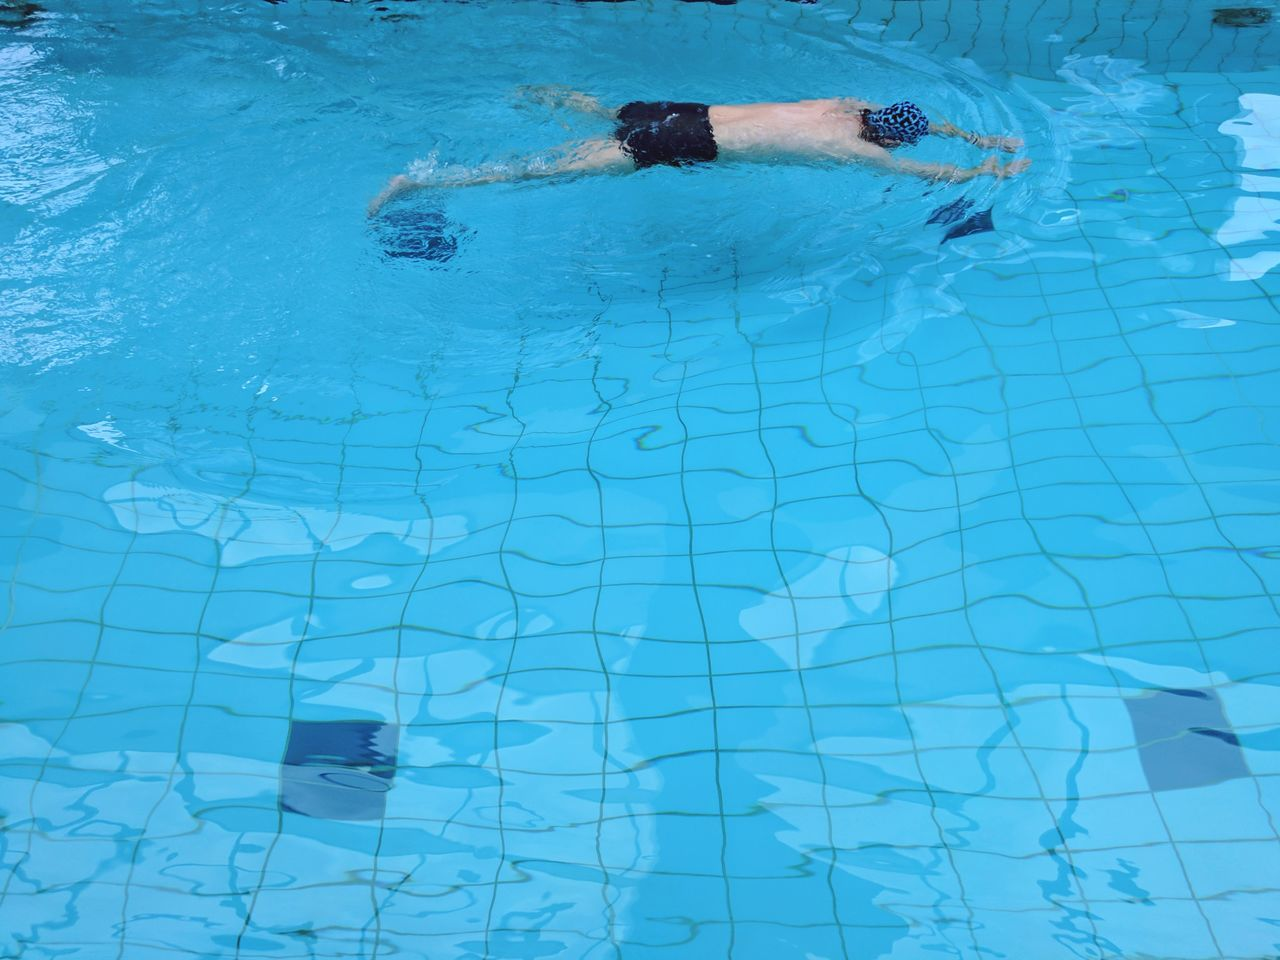 Swimming Pool Water Blue One Person Full Frame Pixelated Exercising Authentic Moments Relaxing Healthy Lifestyle Swimming